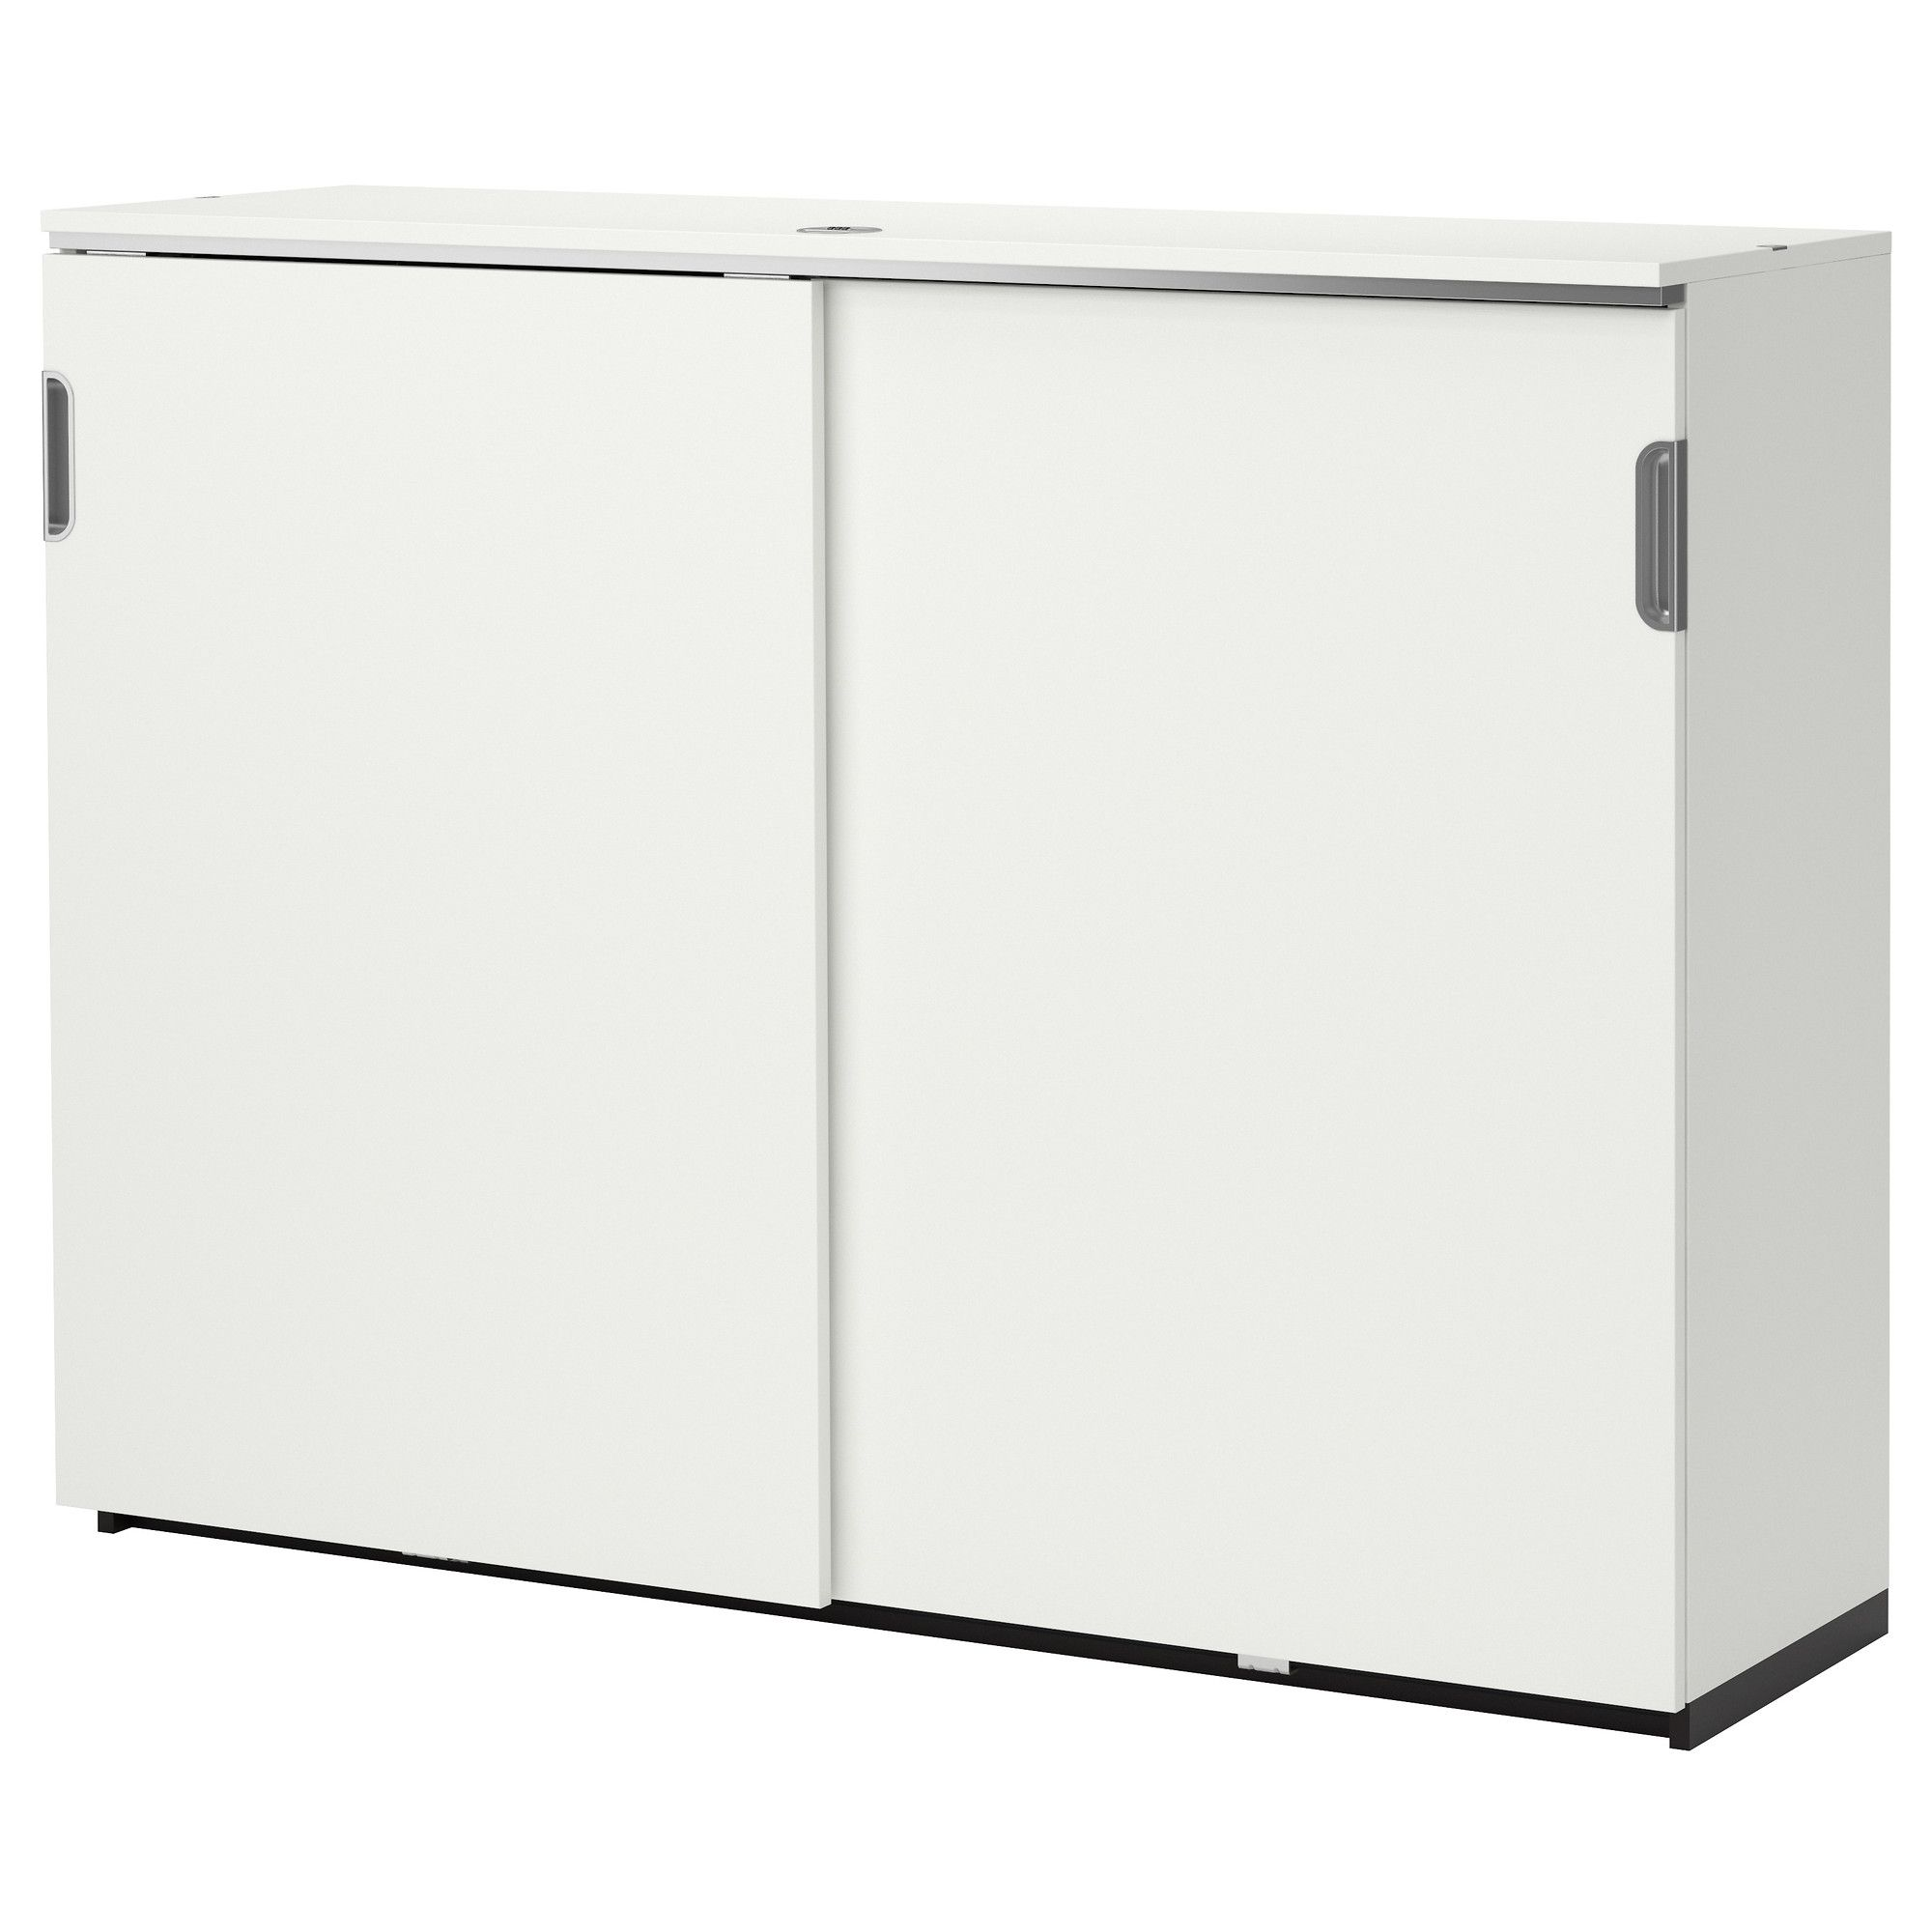 Le Meilleur Bike Storage Galant Cabinet With Sliding Doors White Ce Mois Ci